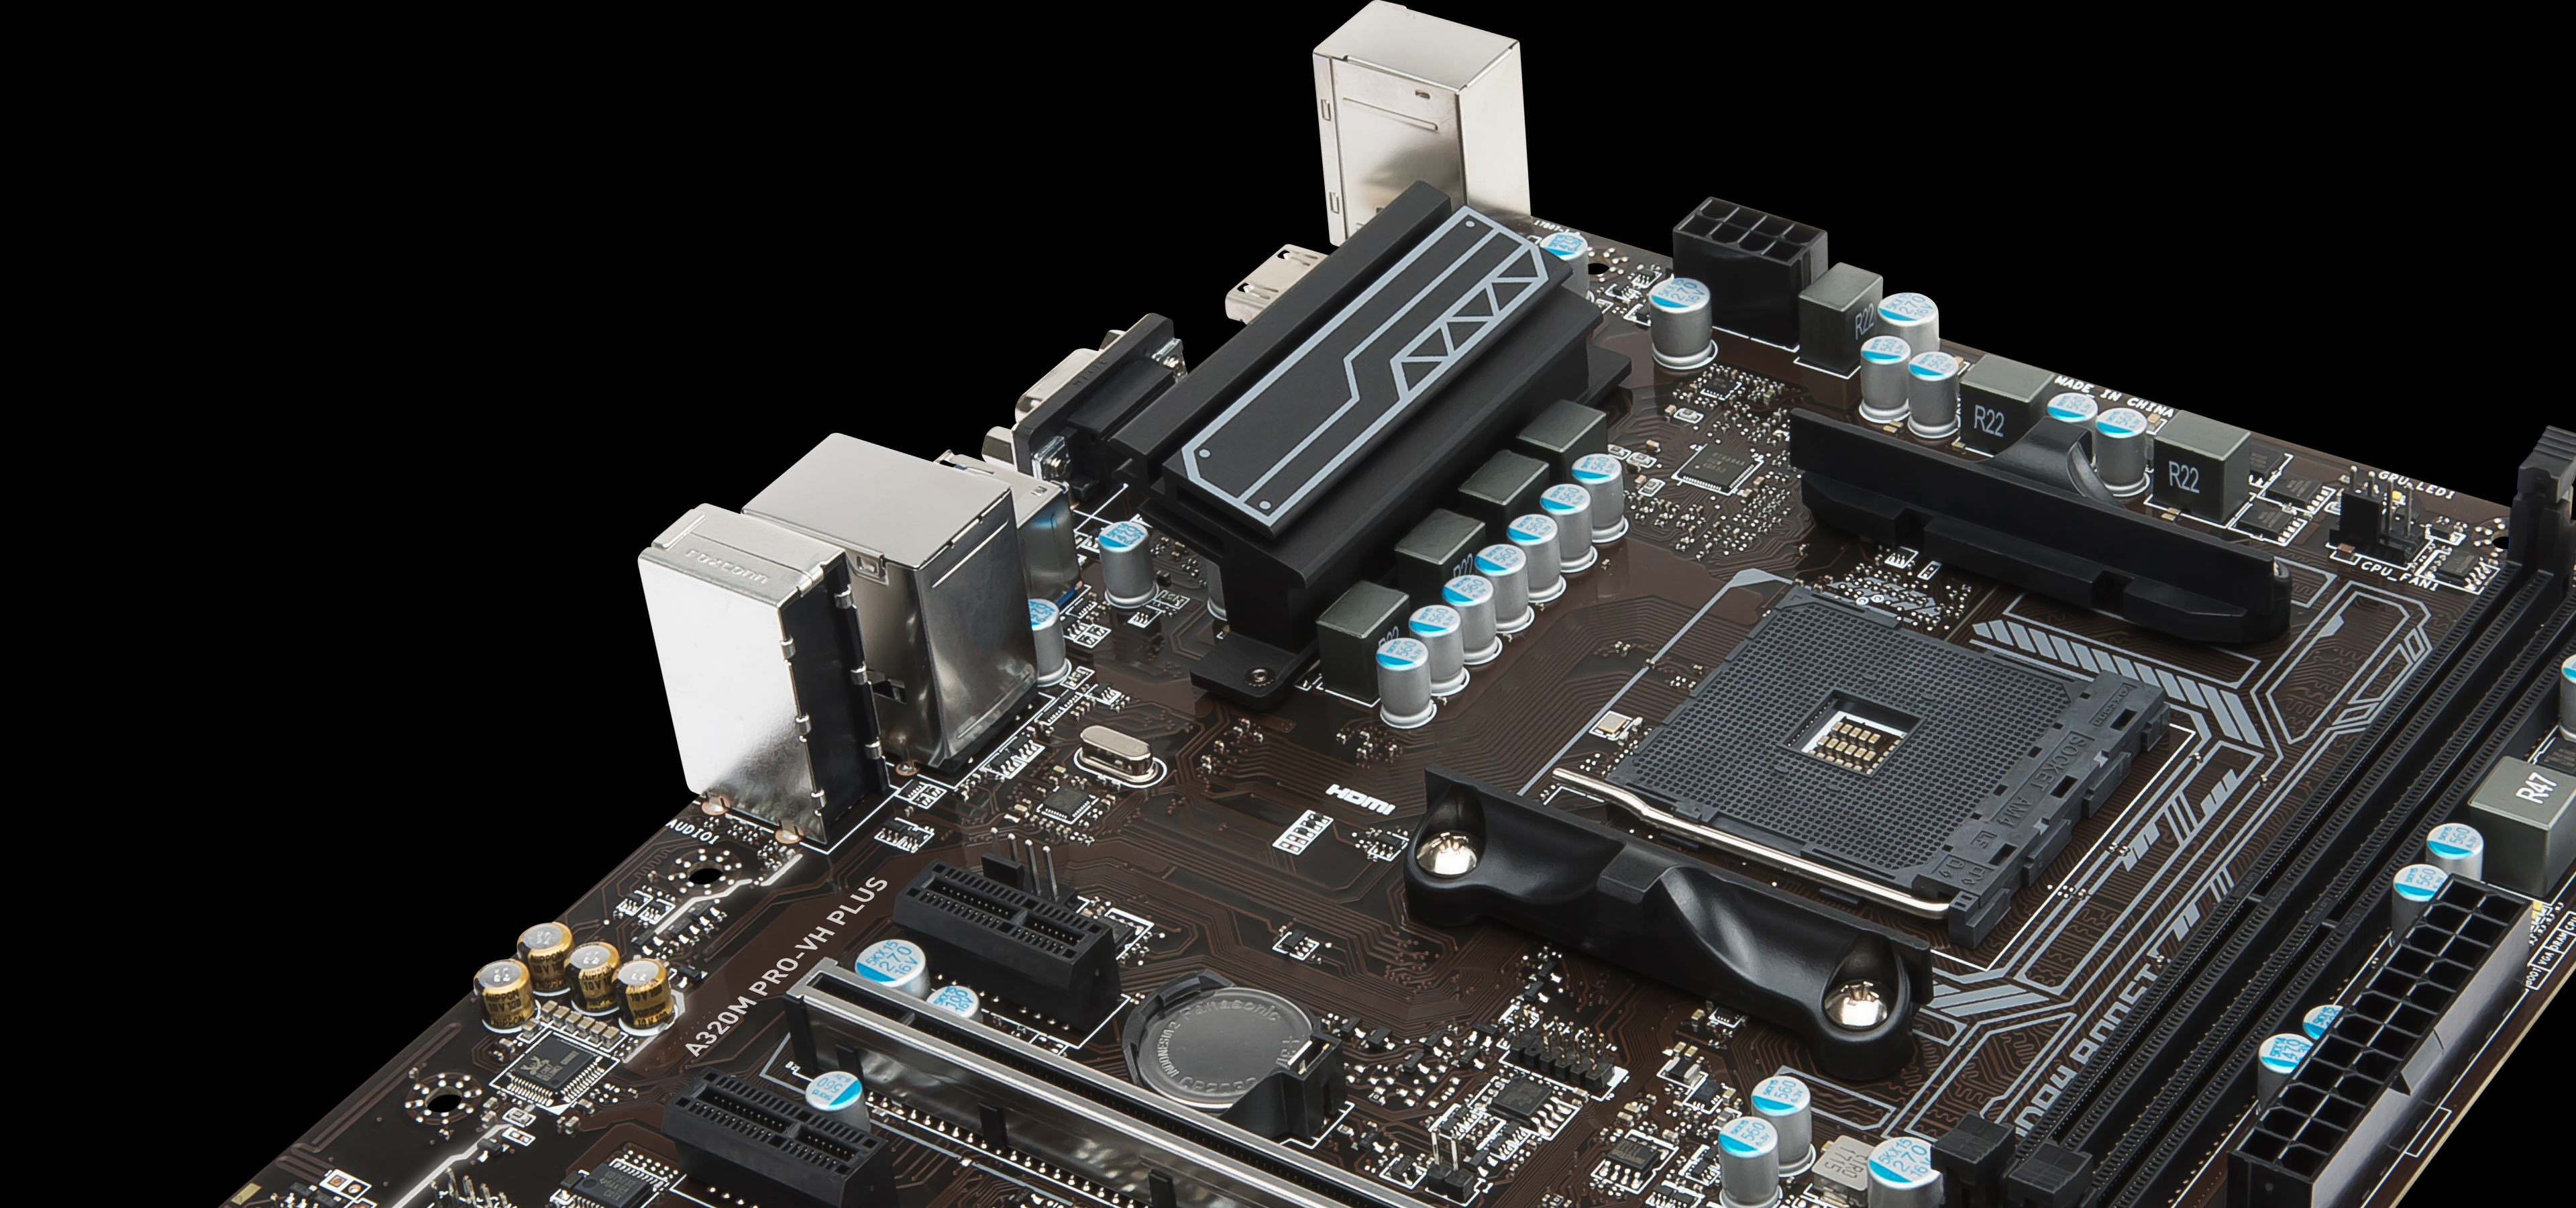 A320M PRO-VH PLUS | Motherboard - The world leader in motherboard